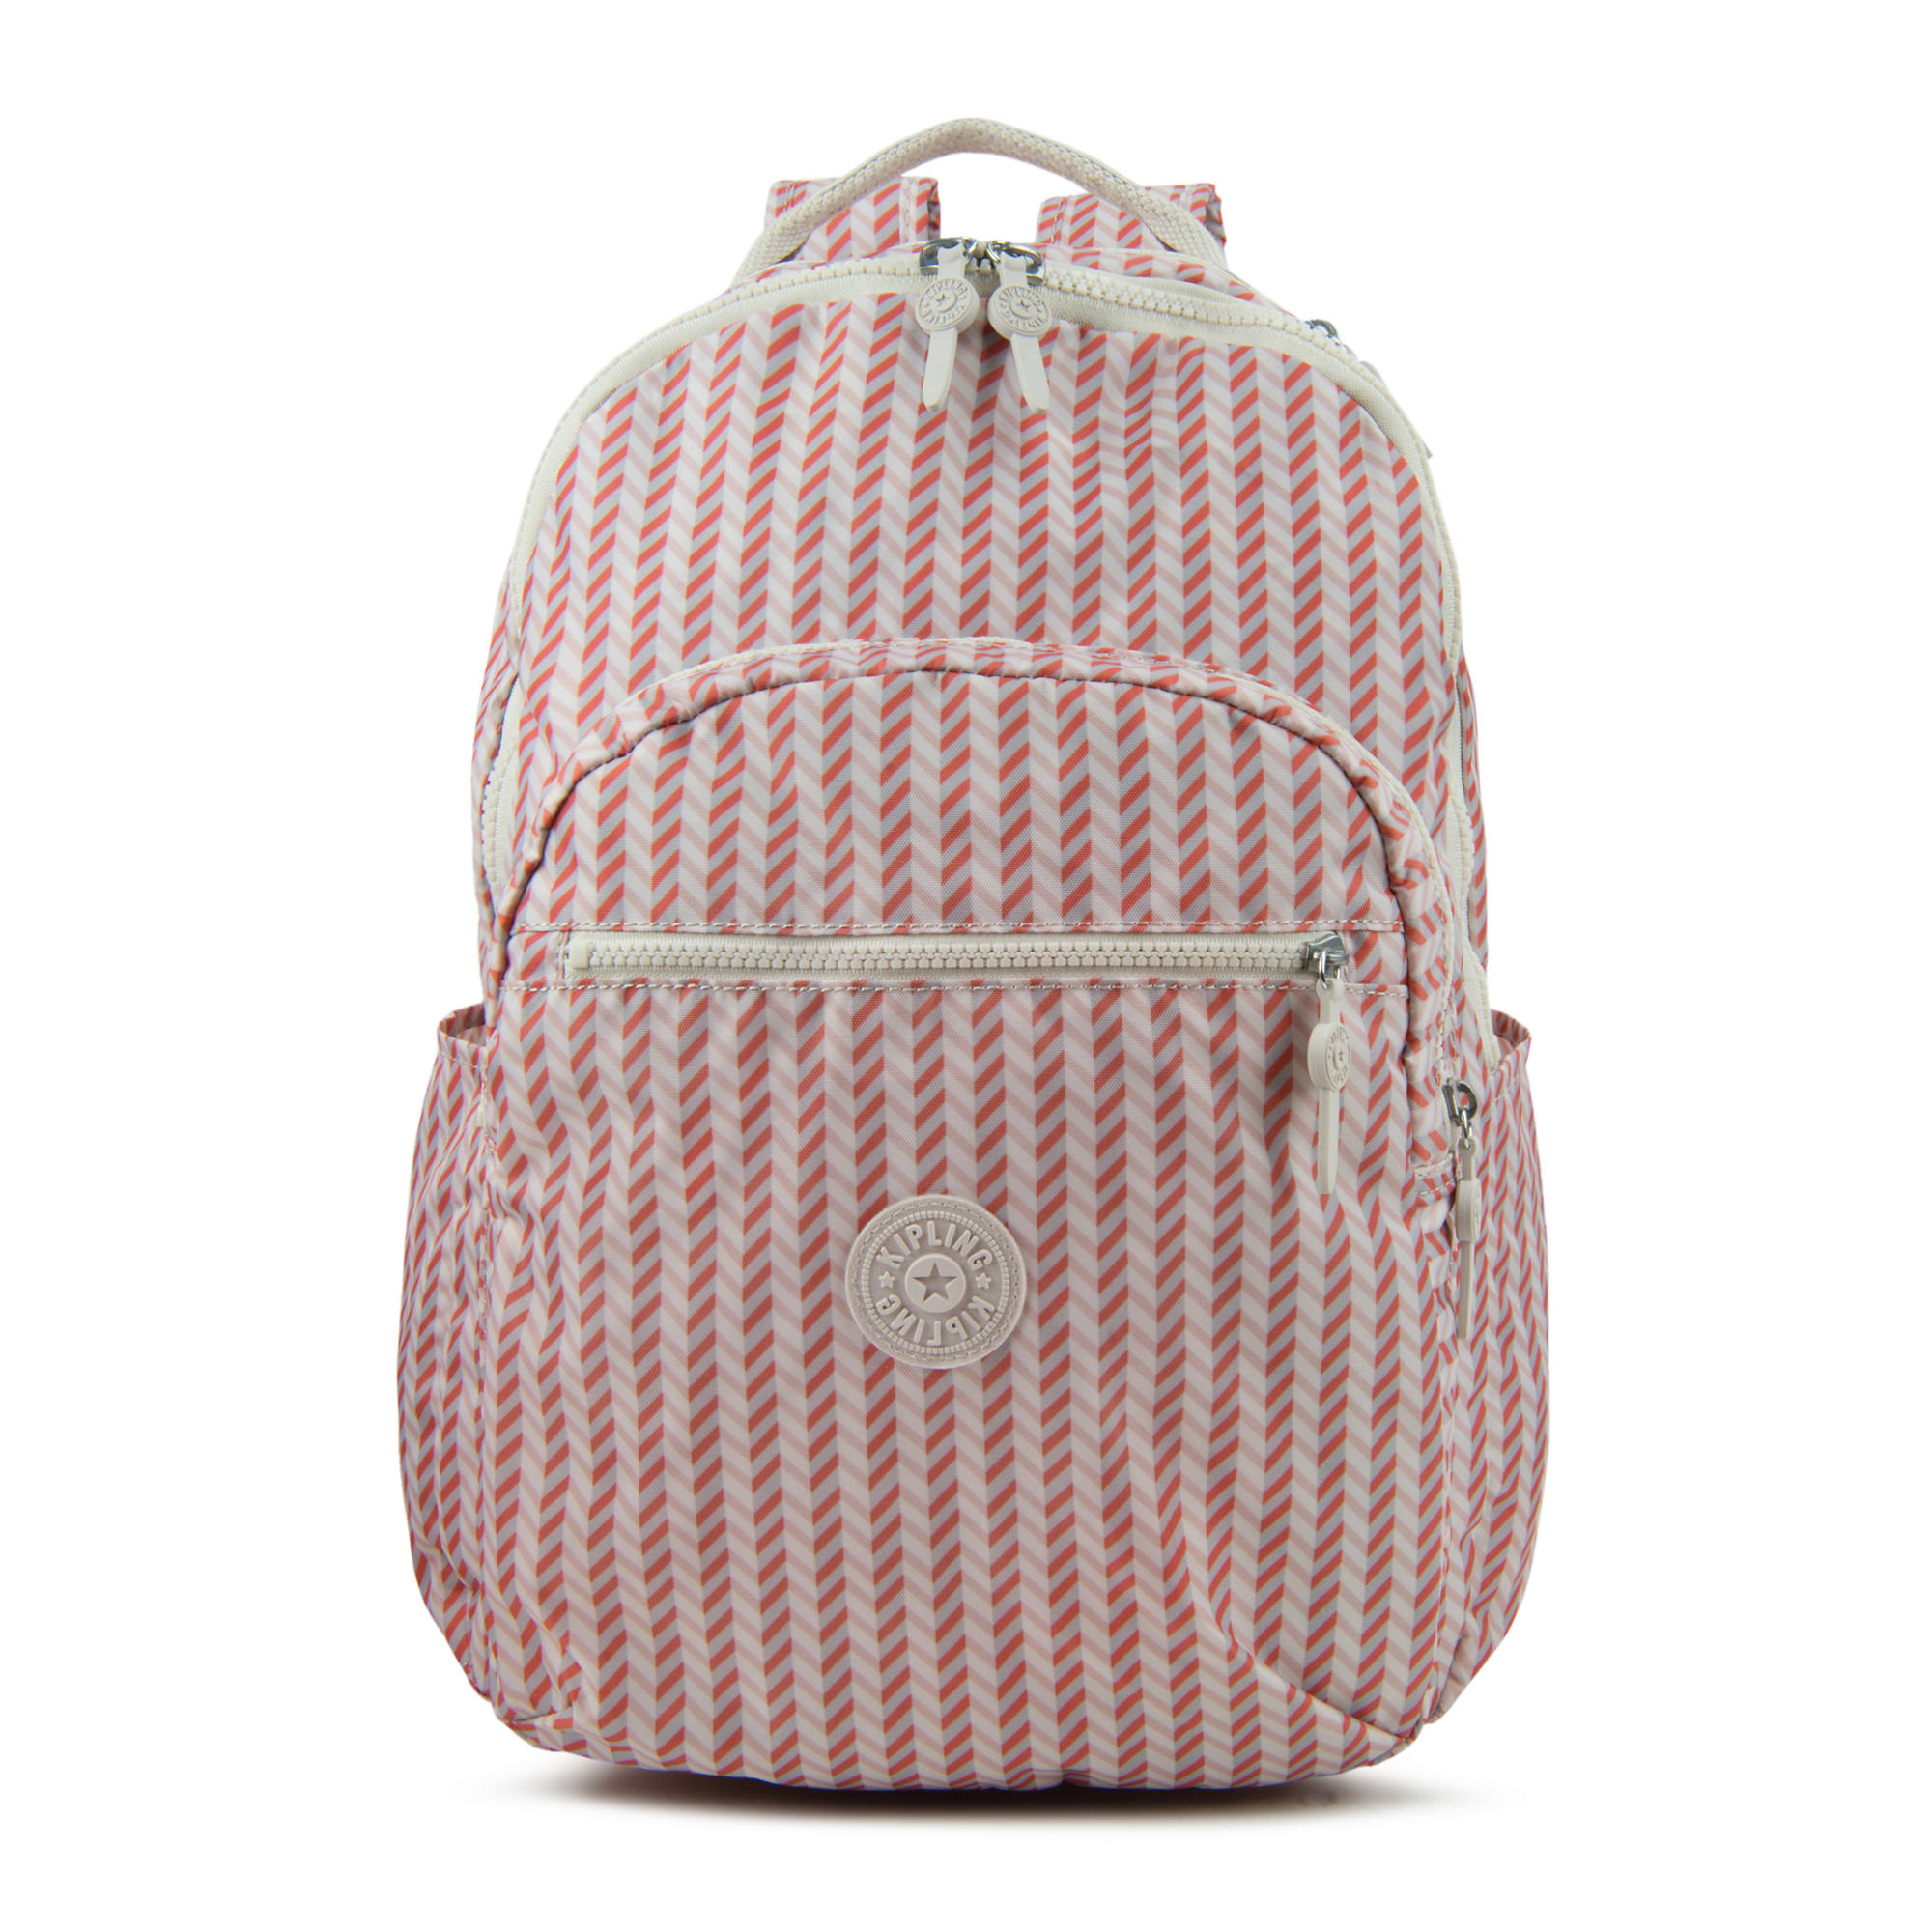 3a262a1213 Seoul Large Printed Laptop Backpack,Strawberry Pink Tonal Zipper,large